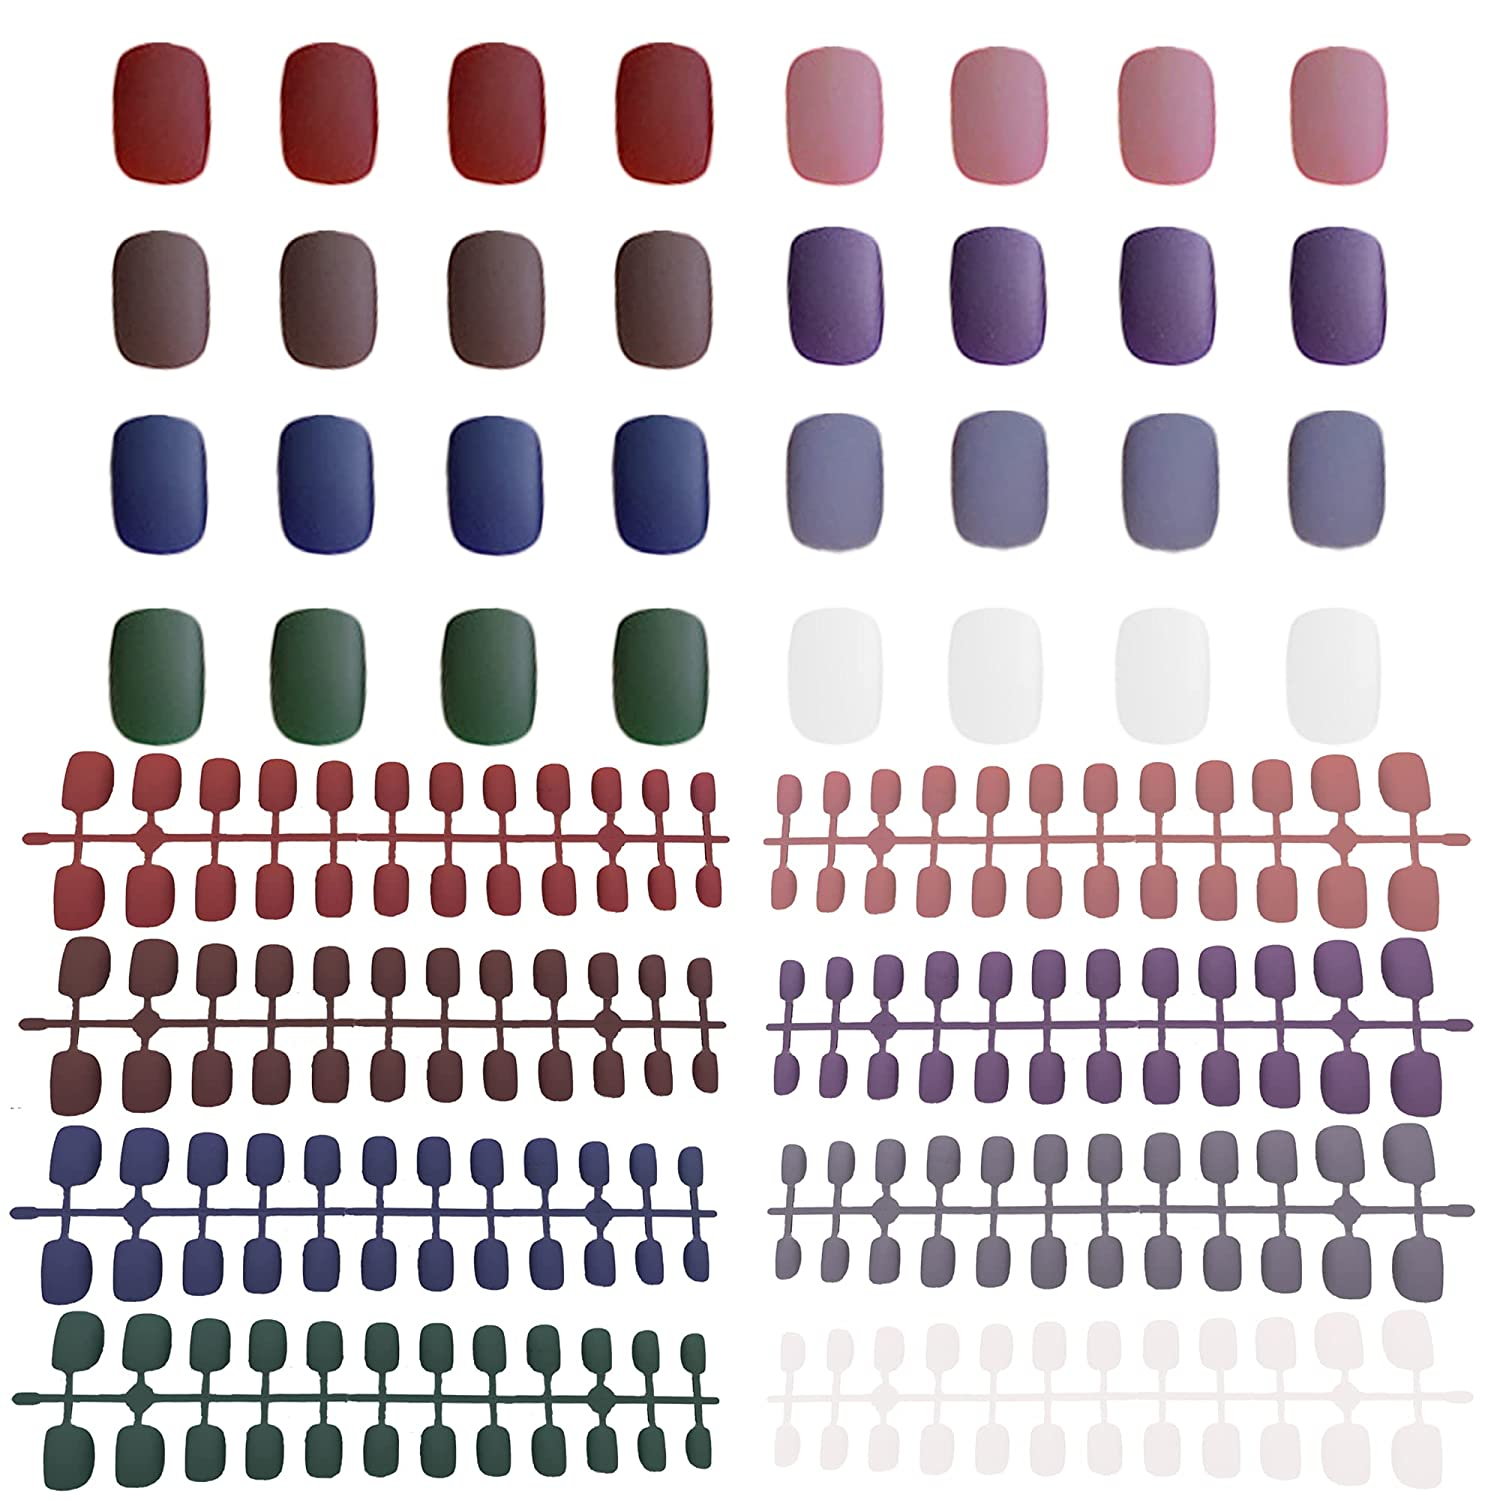 Courier shipping free shipping MUACHCHA 8 Packs 192 Pieces Colorful Short Squ New item Matte Nails False